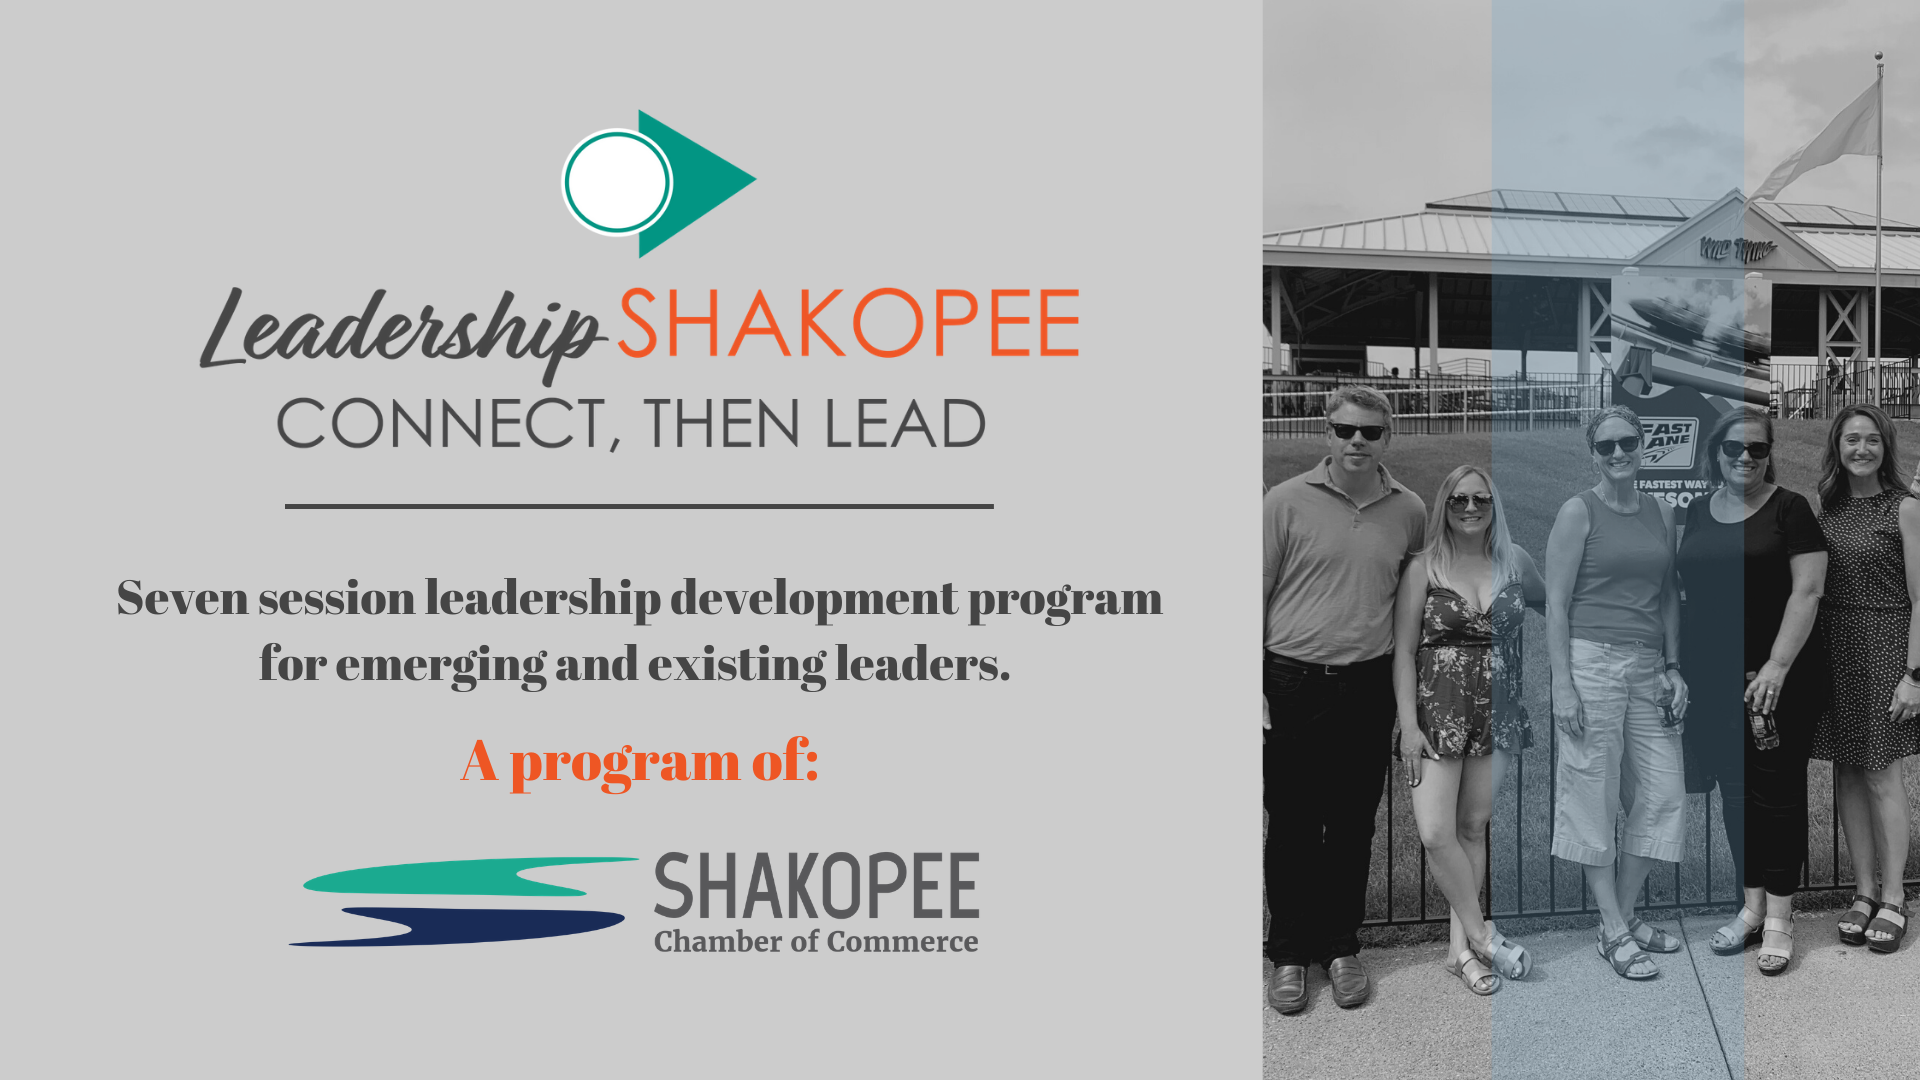 Leadership Shakopee